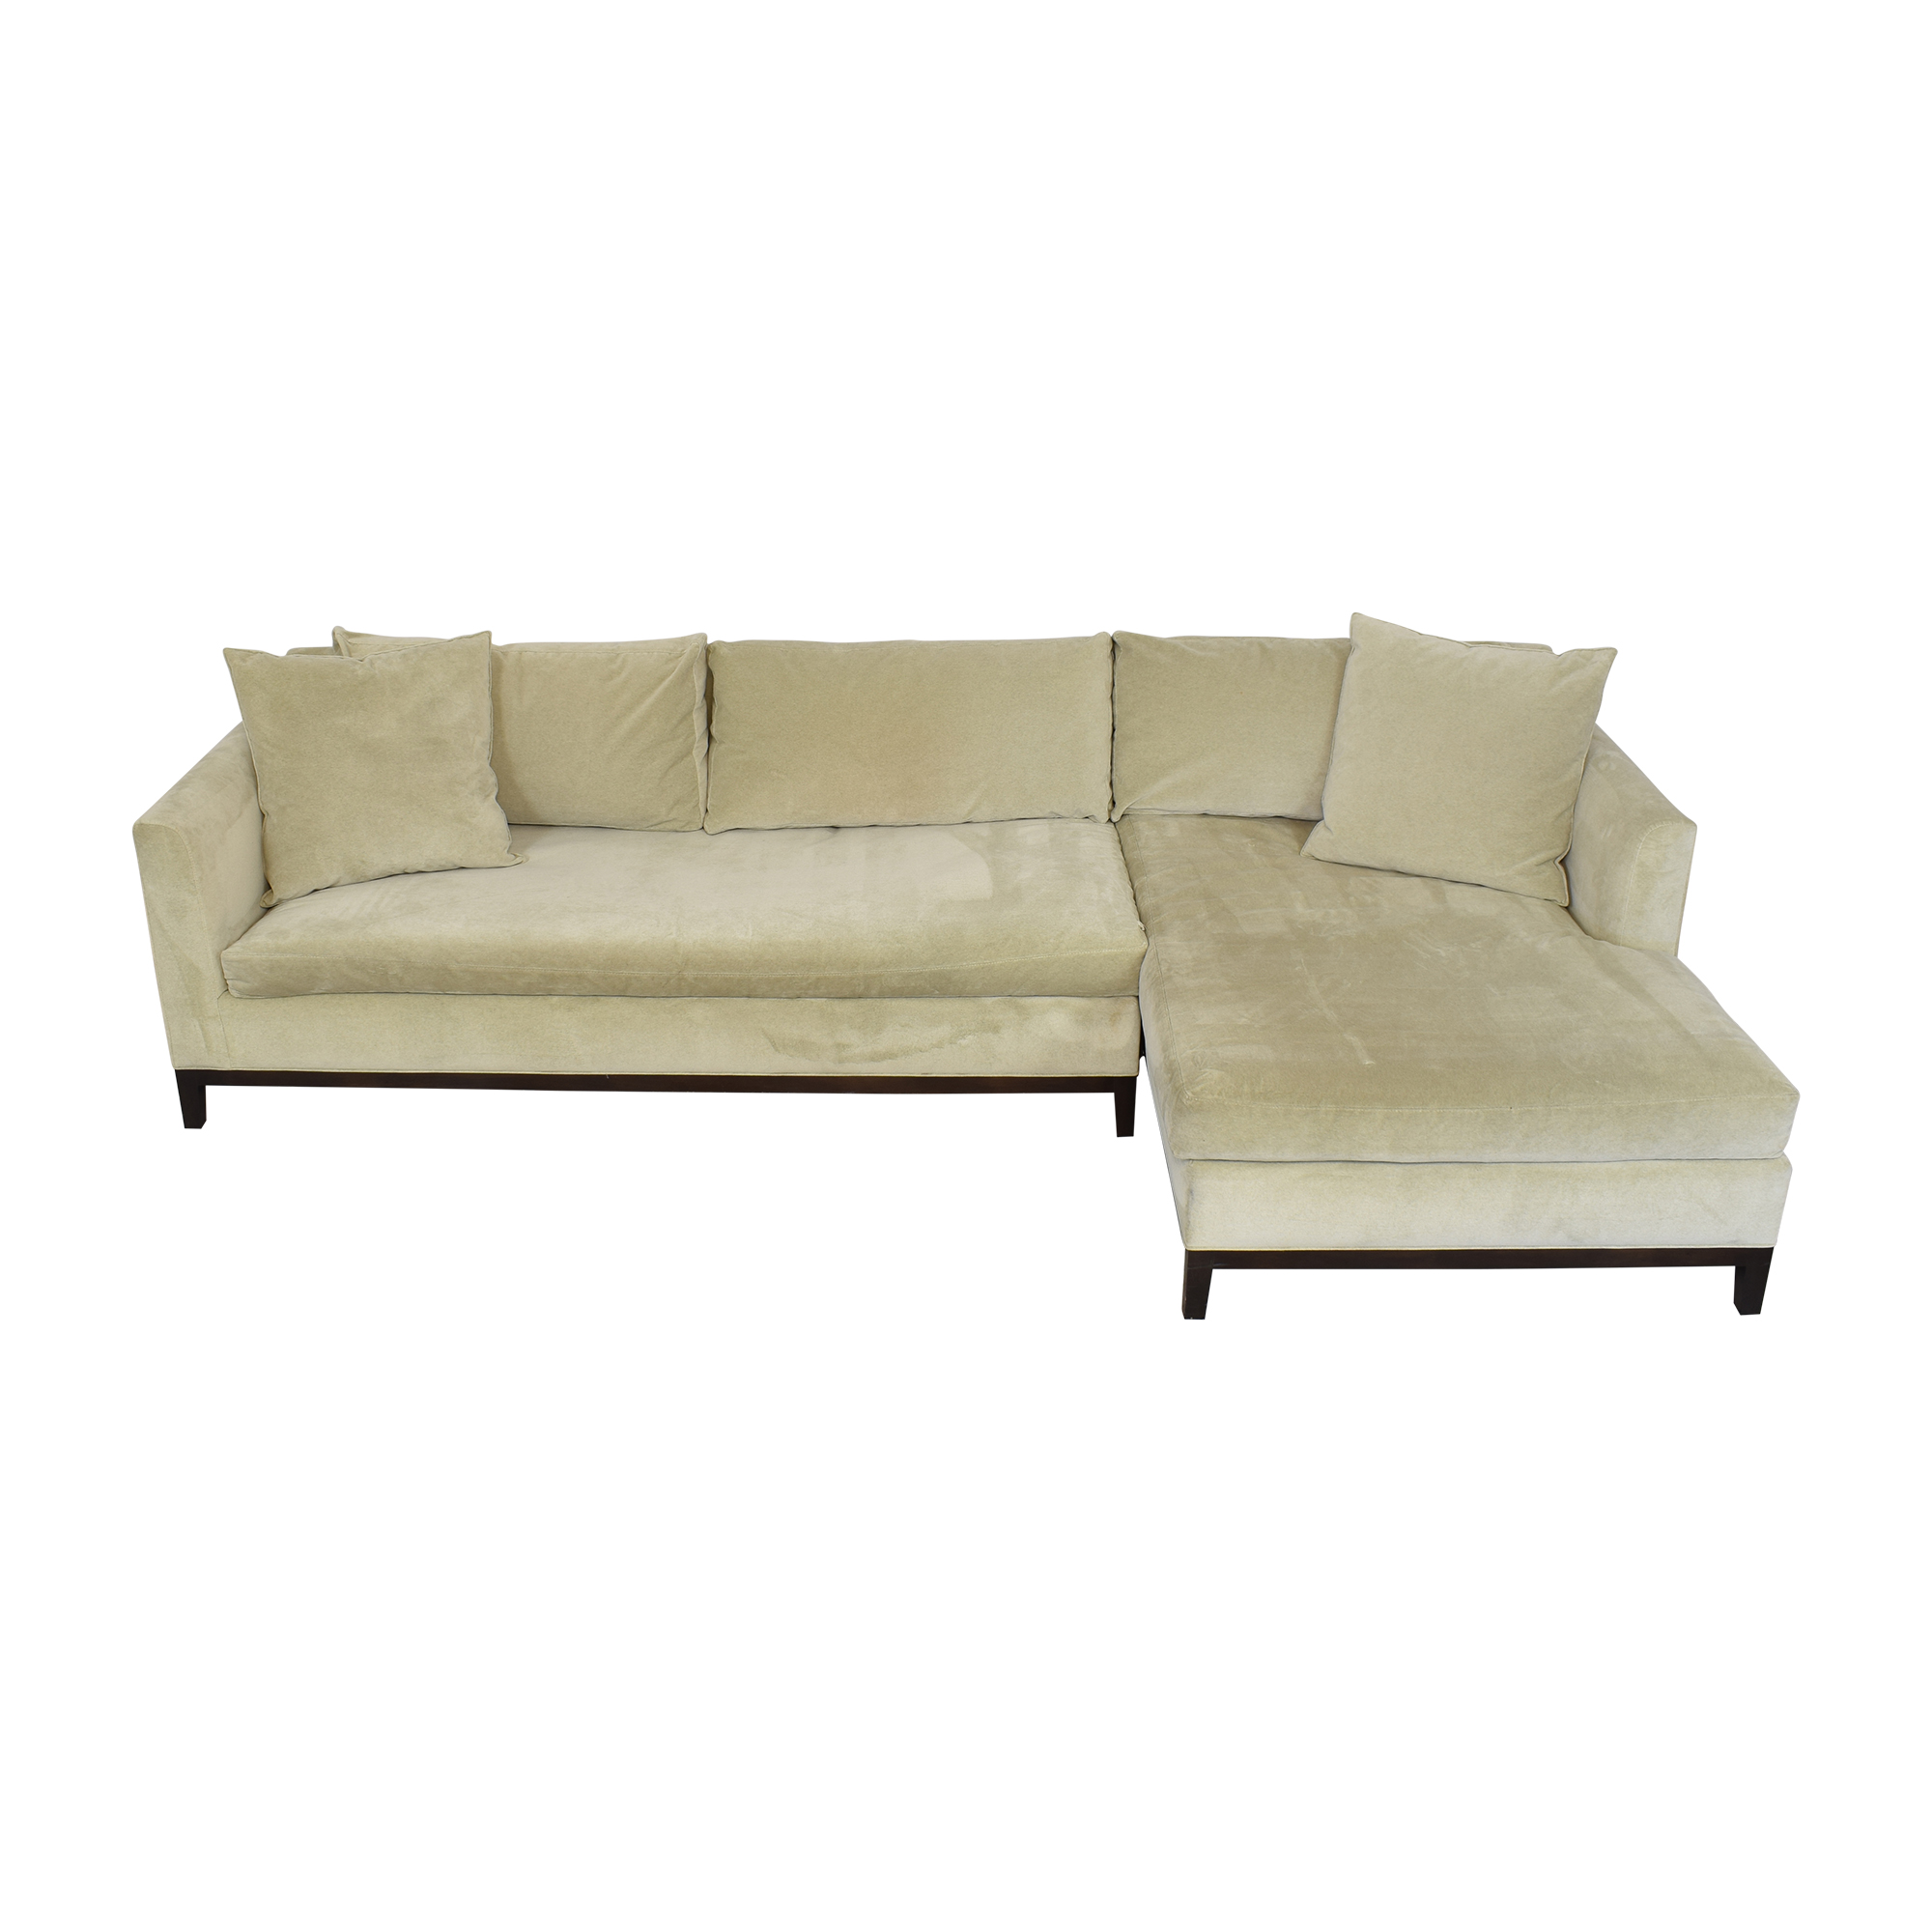 Cisco Brothers Cisco Brothers Tristan Sectional Sofa dimensions